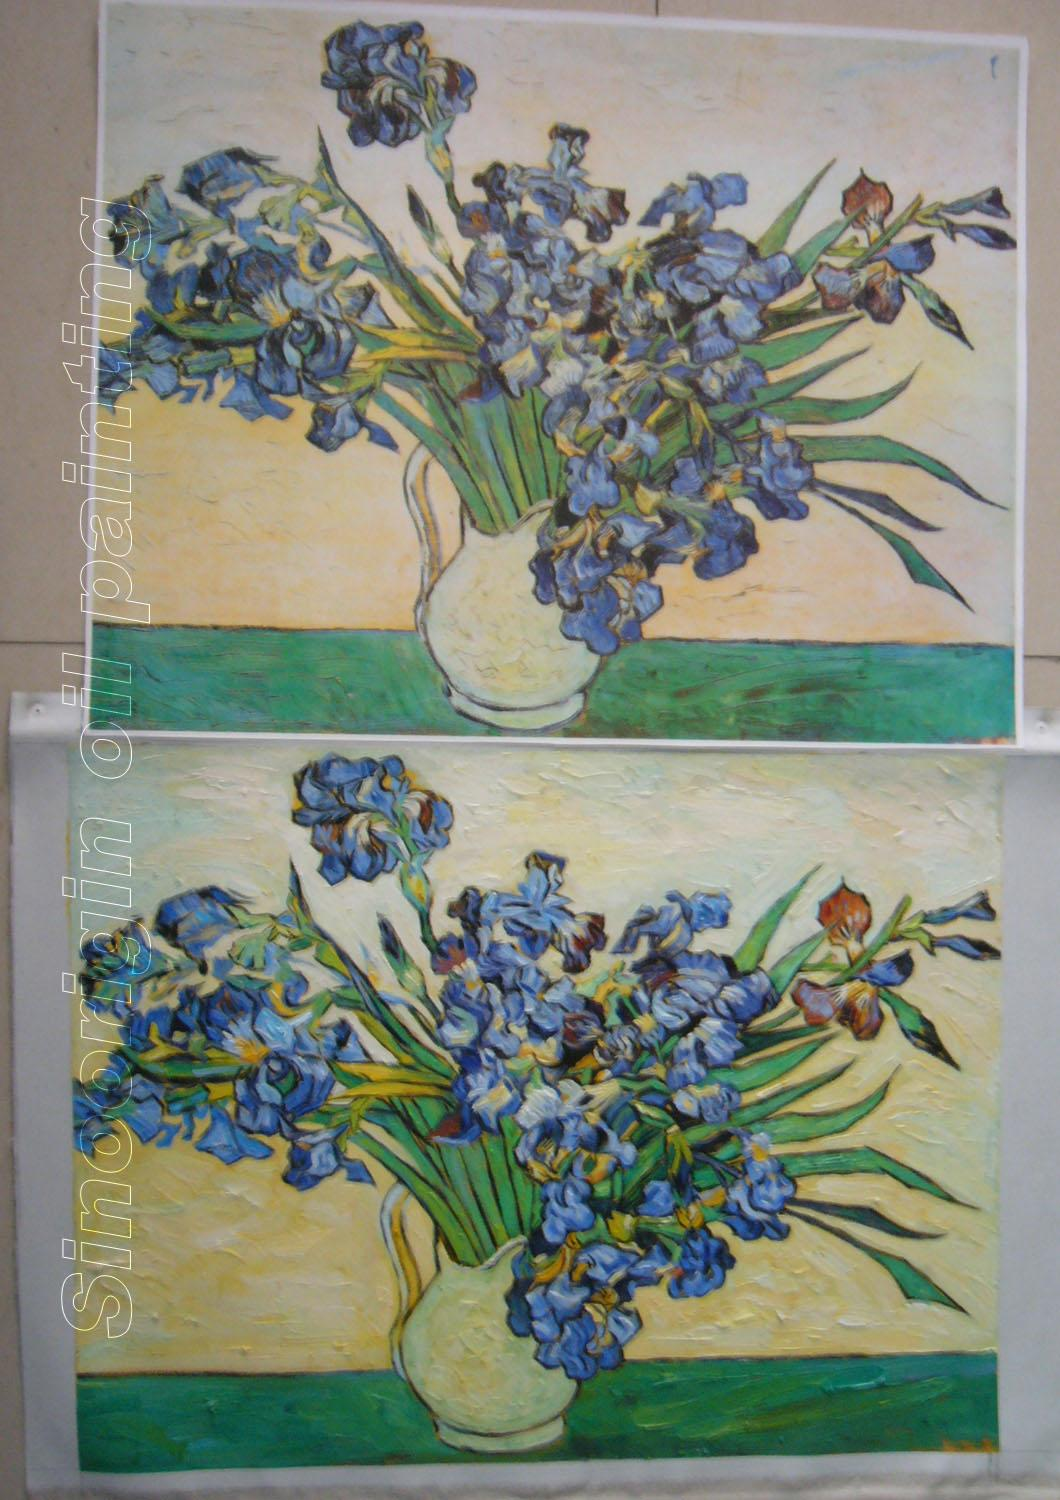 Vincent van gogh oil painting still life vase with irises reviewsmspy